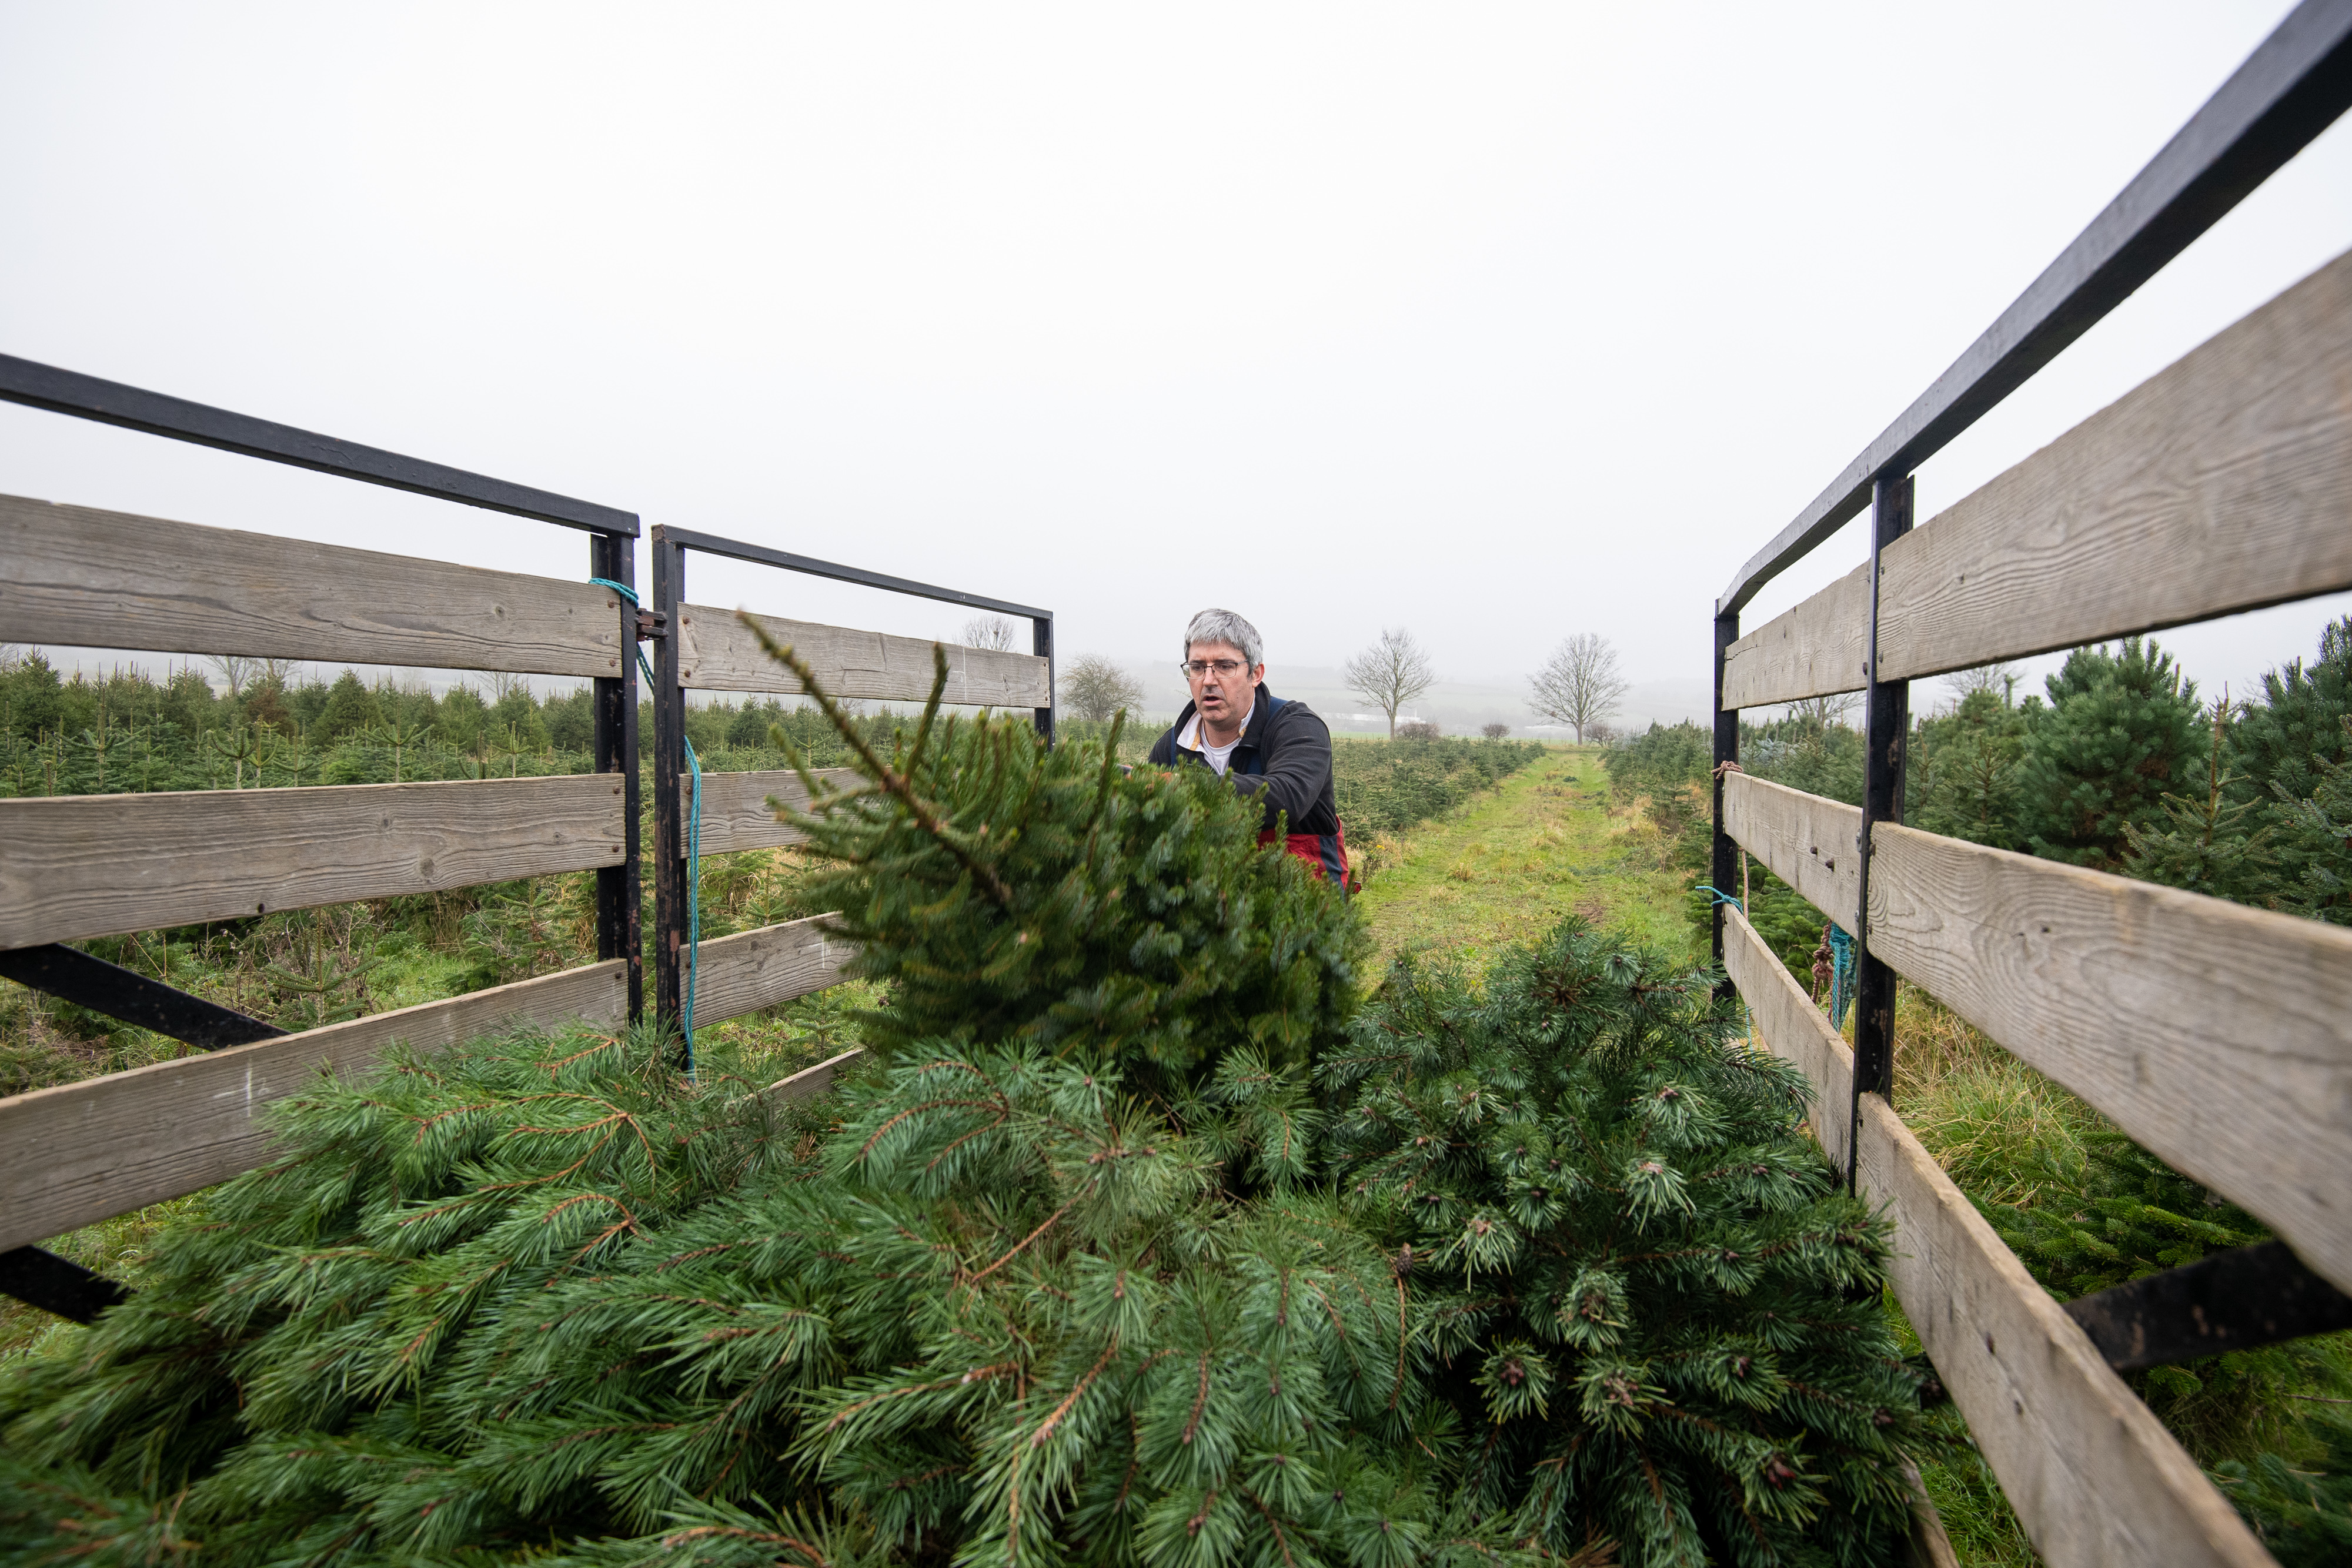 Freshley cut trees are loaded onto a trailer at Digby Farm Christmas Trees in Rutland. Families are preparing for Christmas after the UK Government and devolved administrations have agreed a temporary easing of coronavirus restrictions over the festive period, allowing three households to mix in a bubble from December 23 to 27.